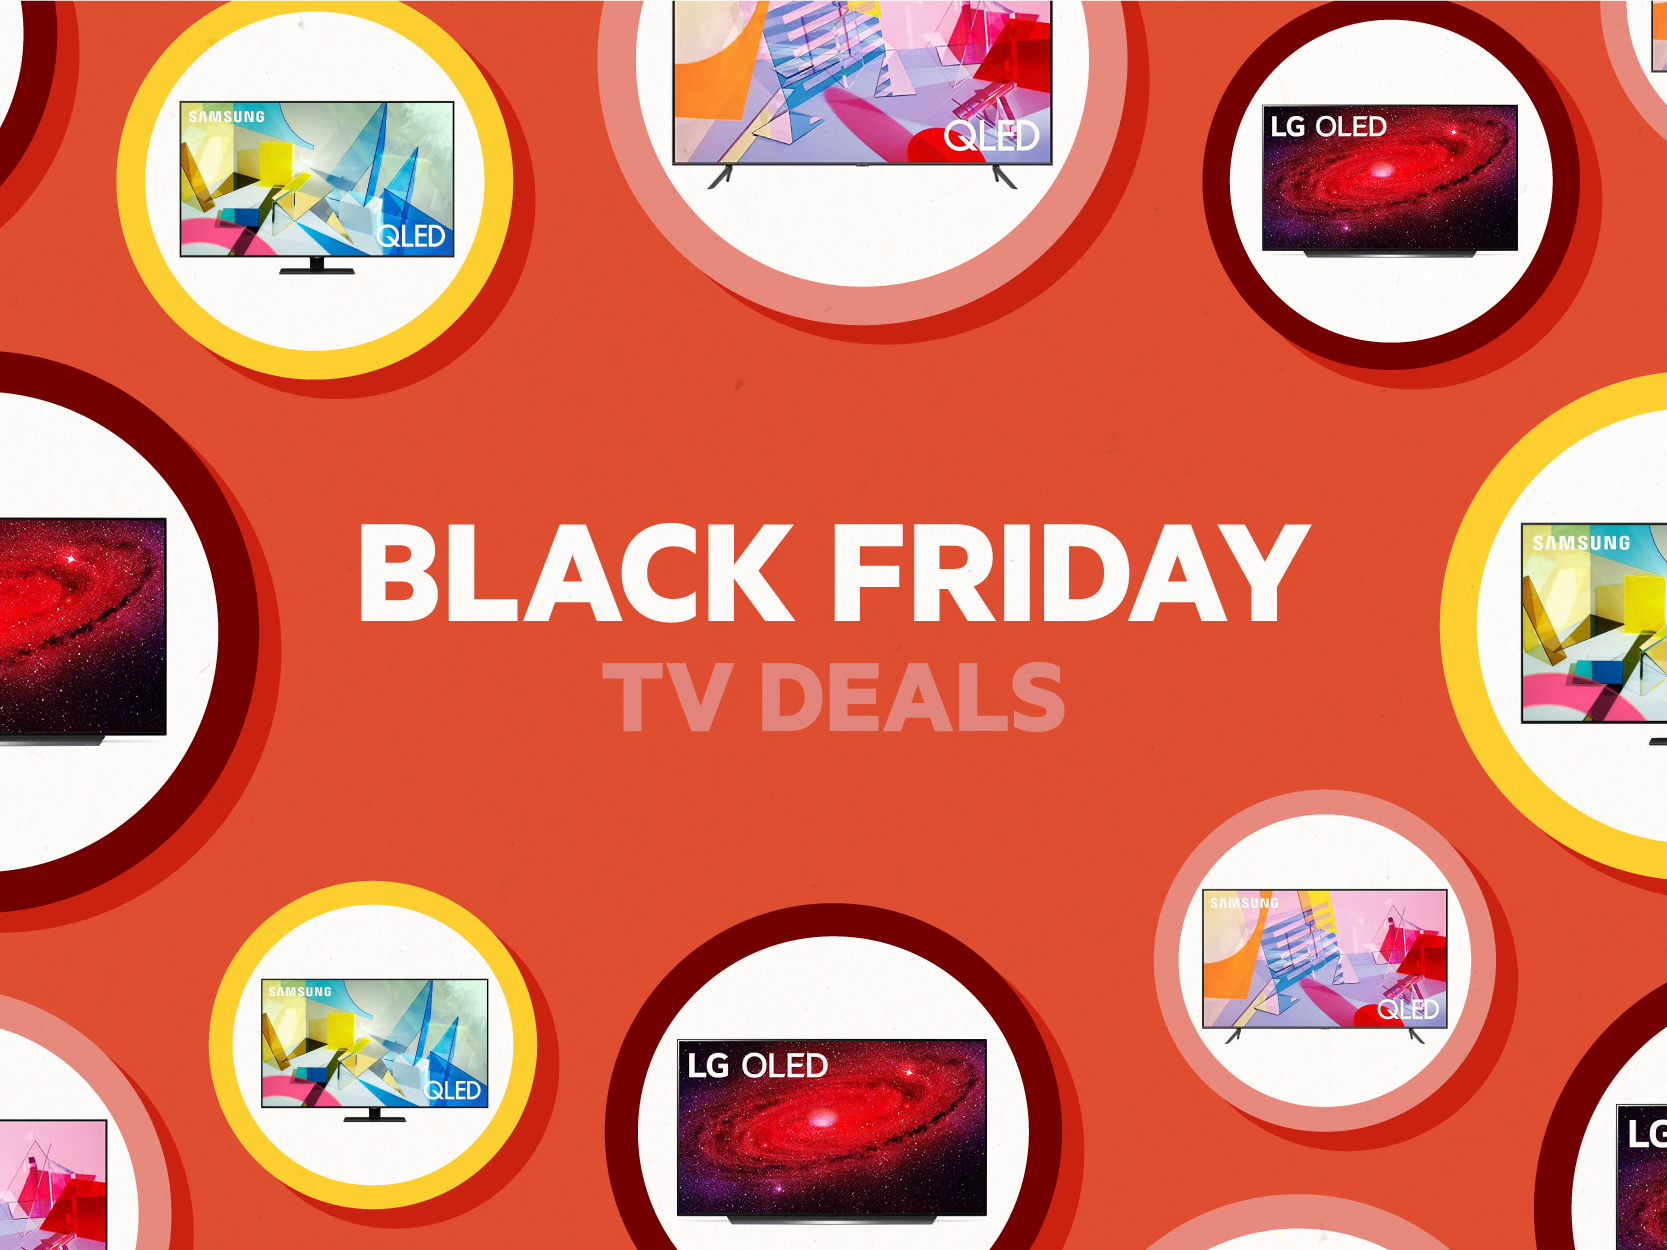 The best Black Friday TV deals available now from LG, Samsung, Sony, and more